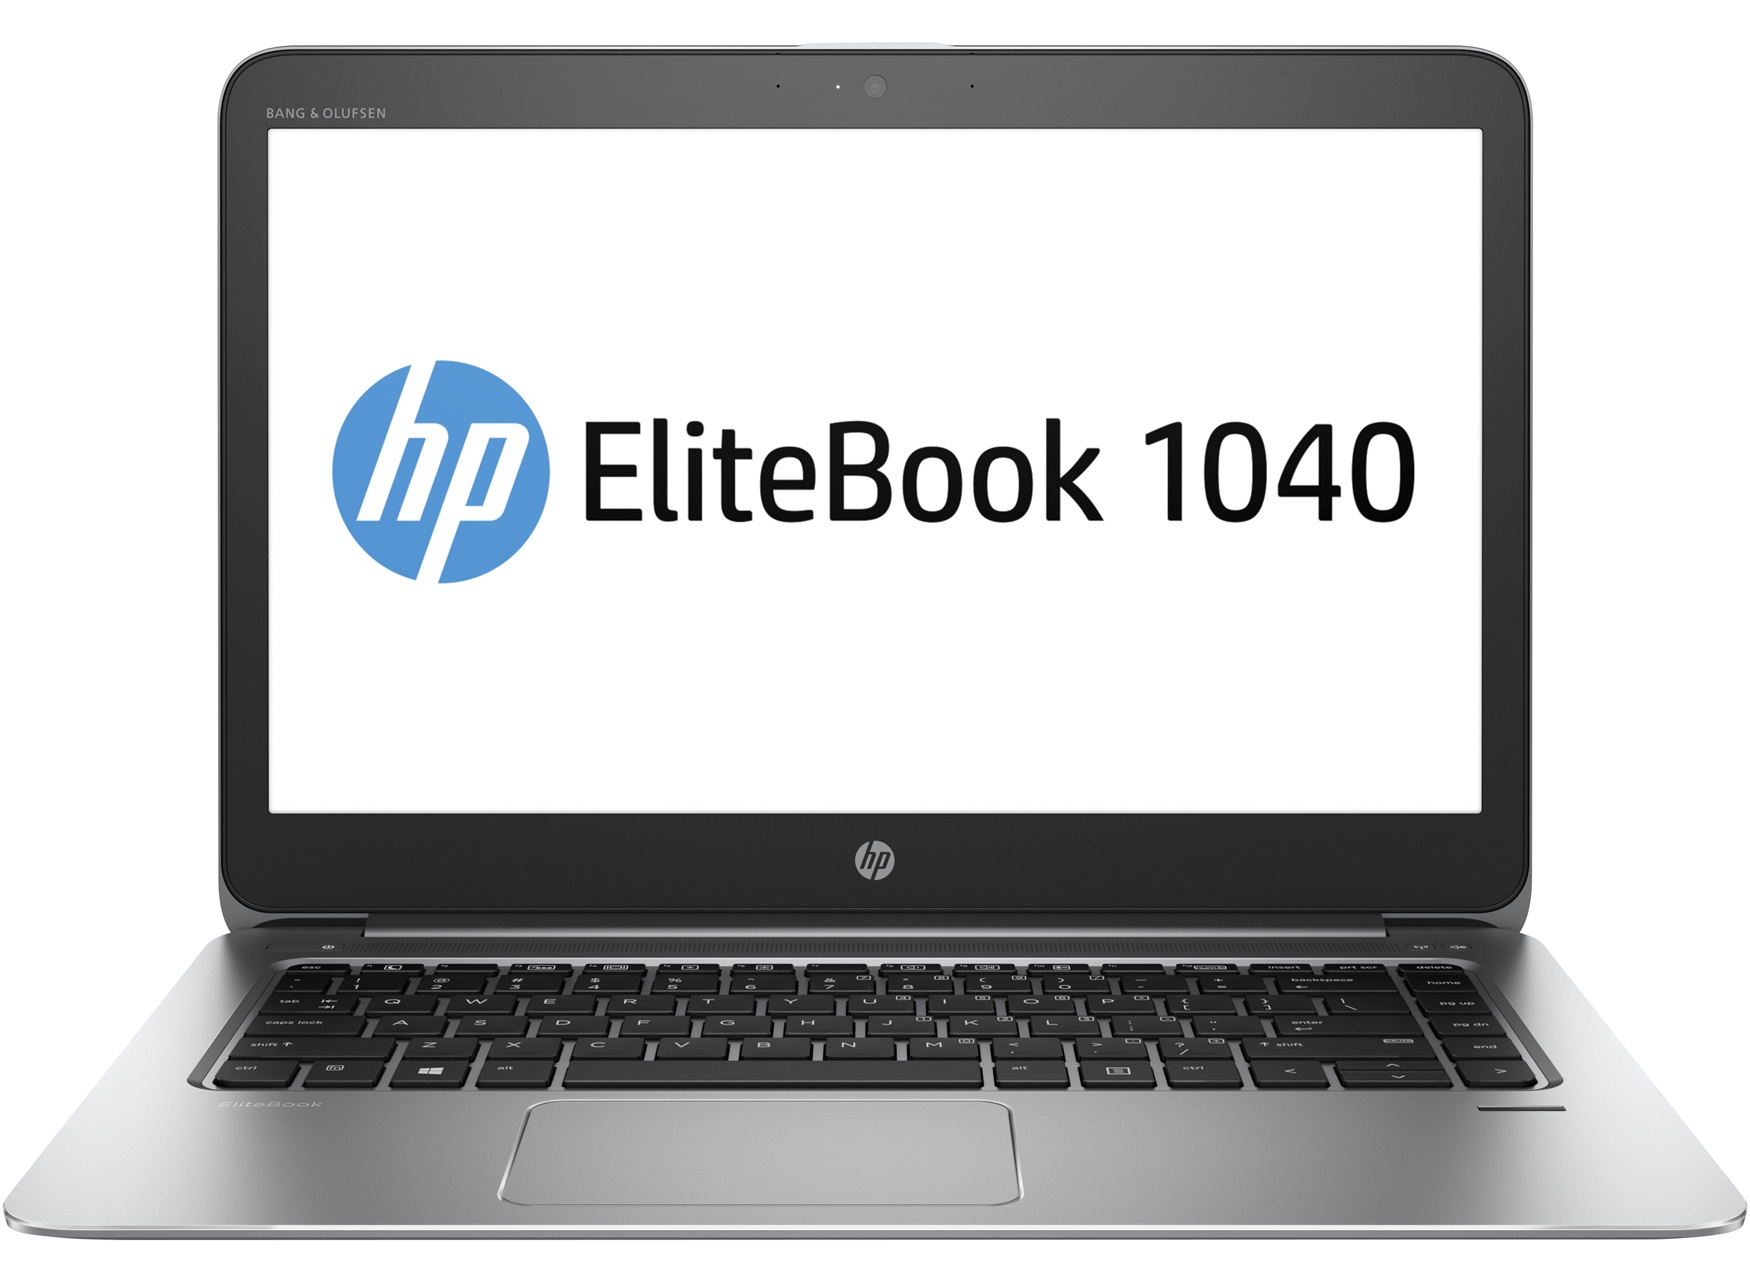 HP EliteBook 1040 G3 2.4GHz i5-6300U 14